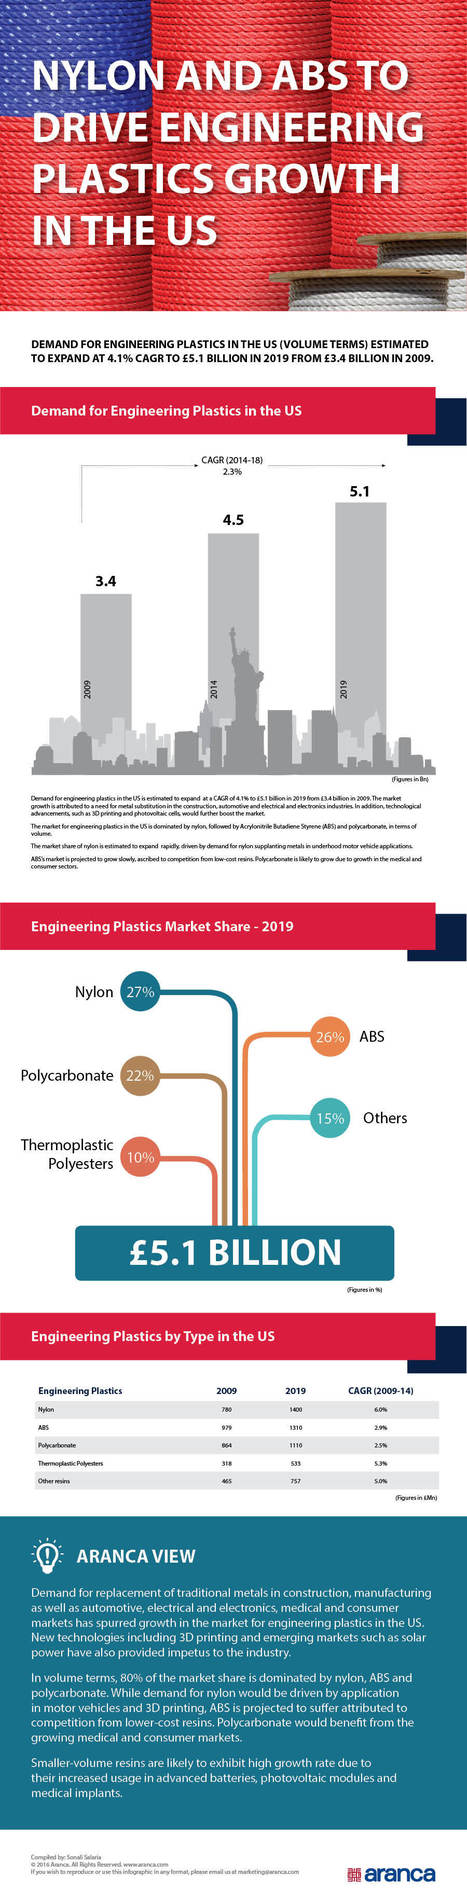 Aranca - Nylon and ABS to Drive Engineering Plastics Growth in the US   Business Research   Scoop.it